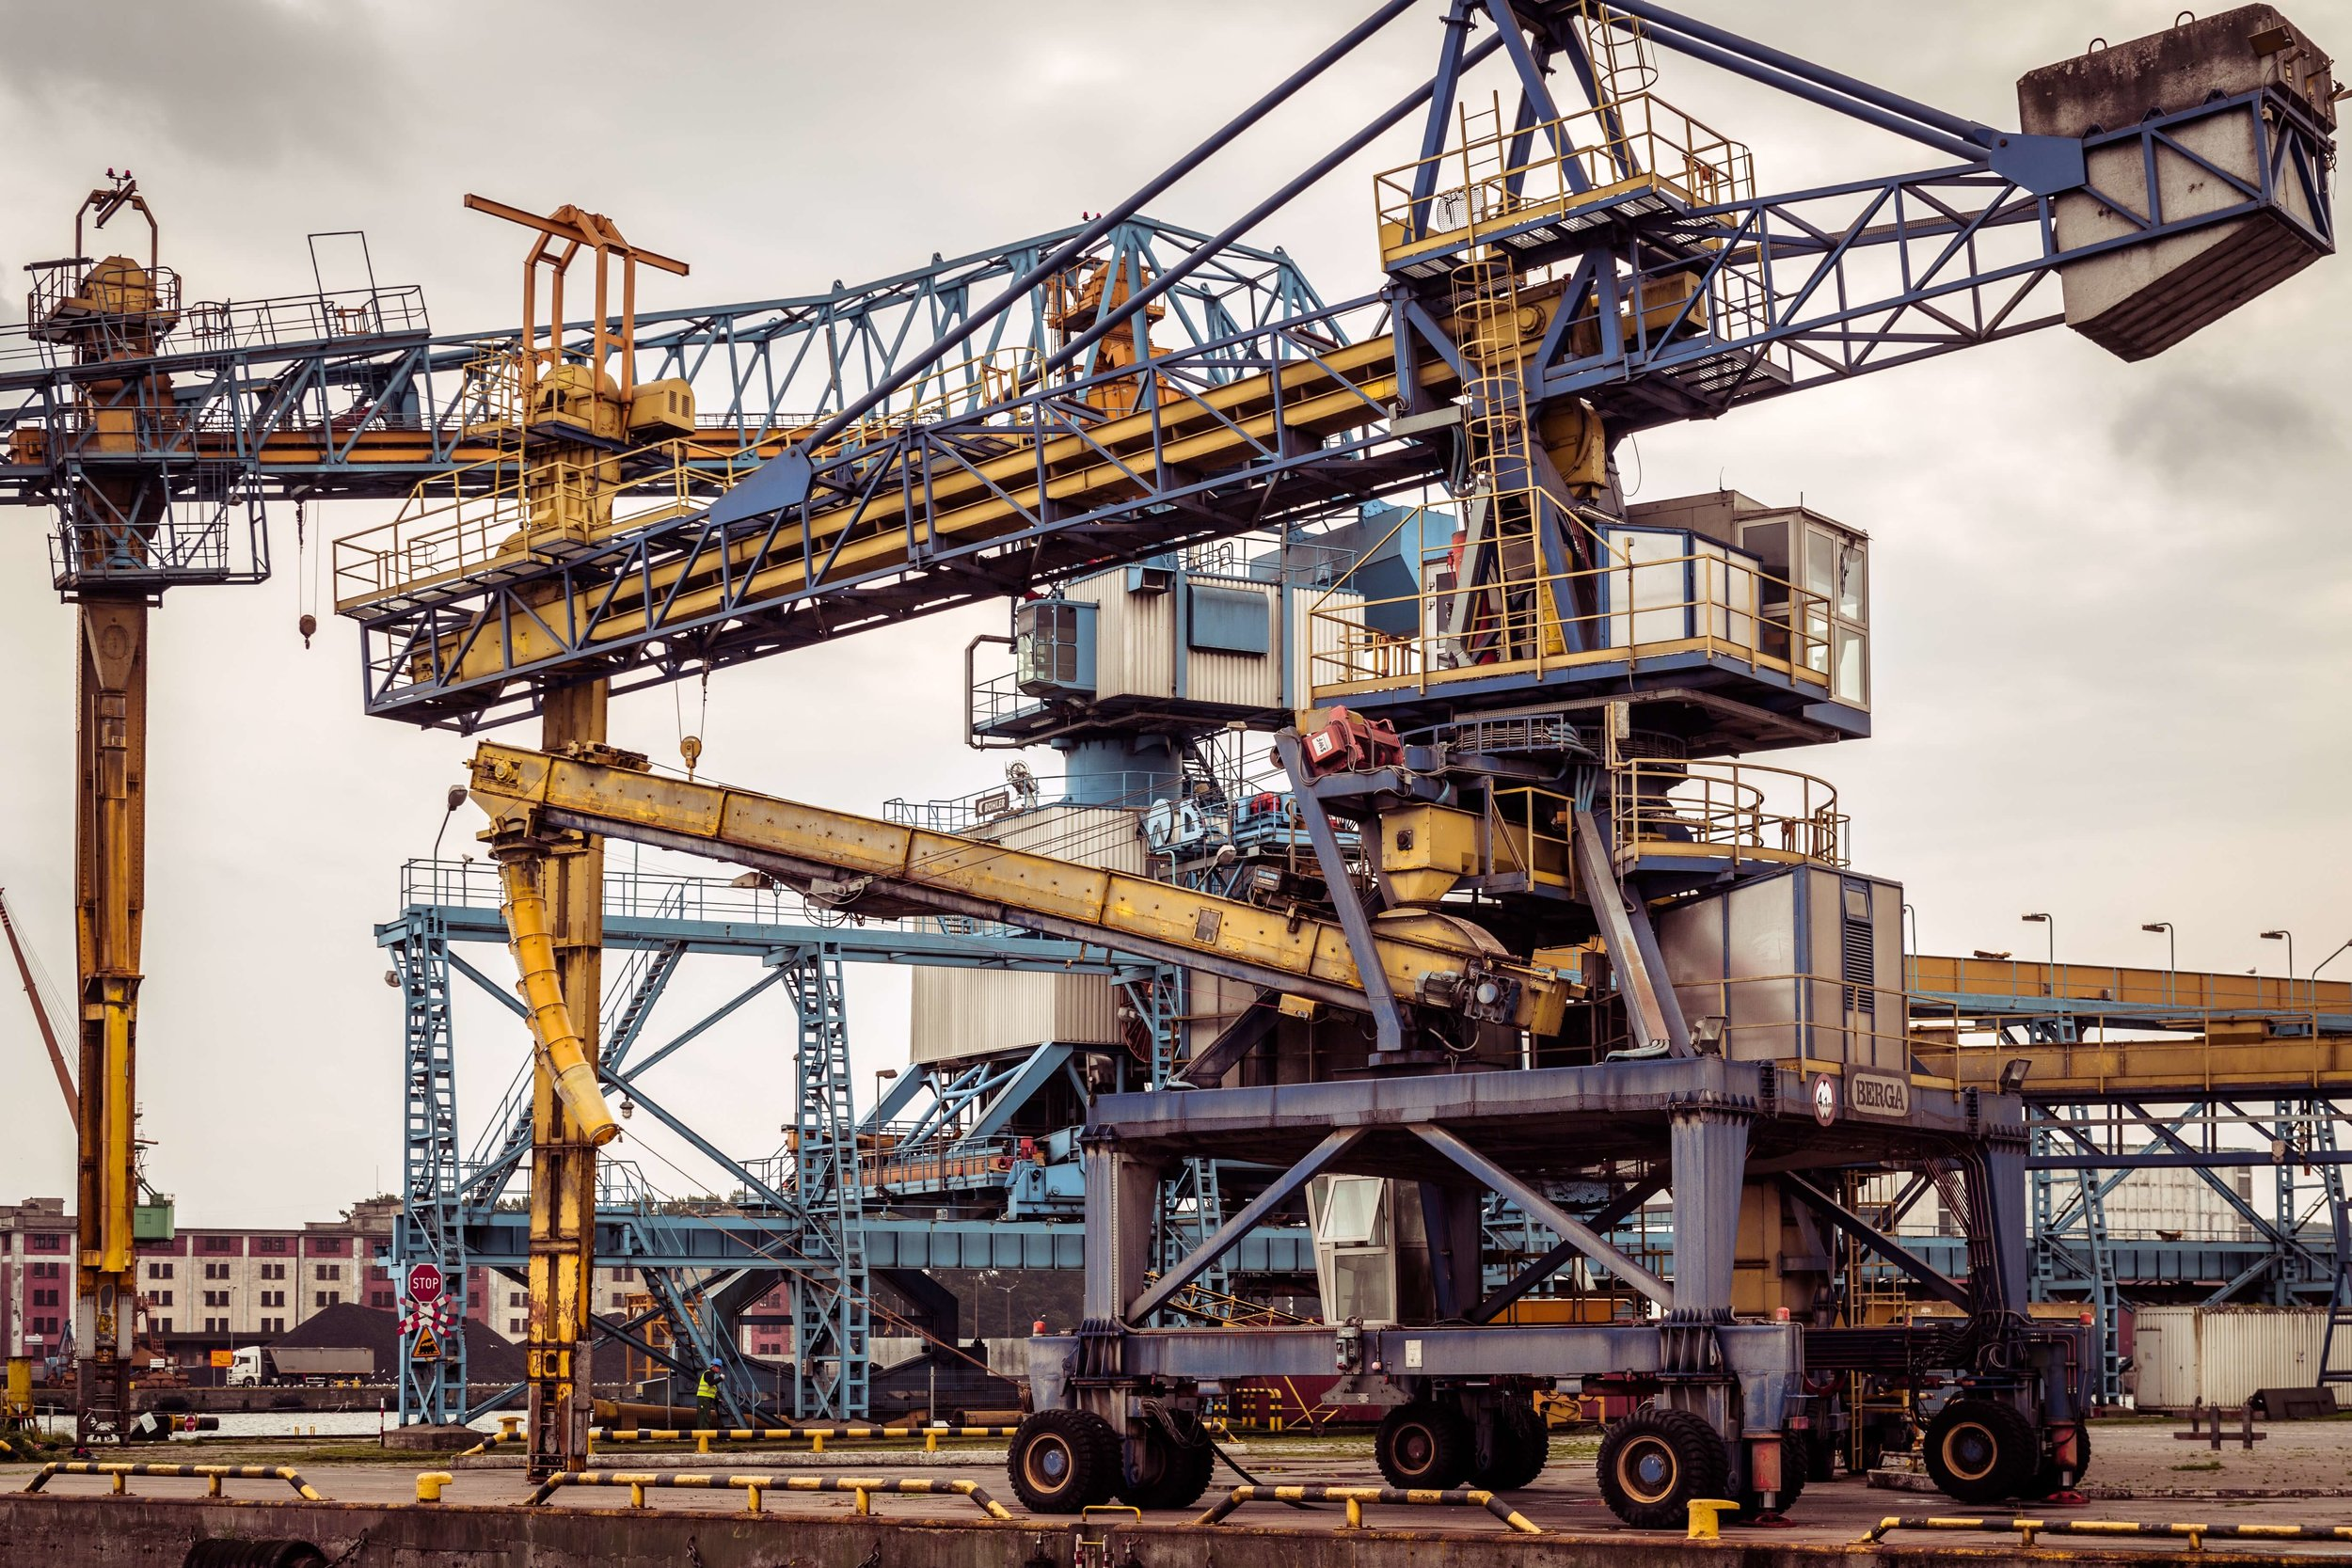 Giant Crane and Other Machinery in Sea Port and Shipyard.jpg